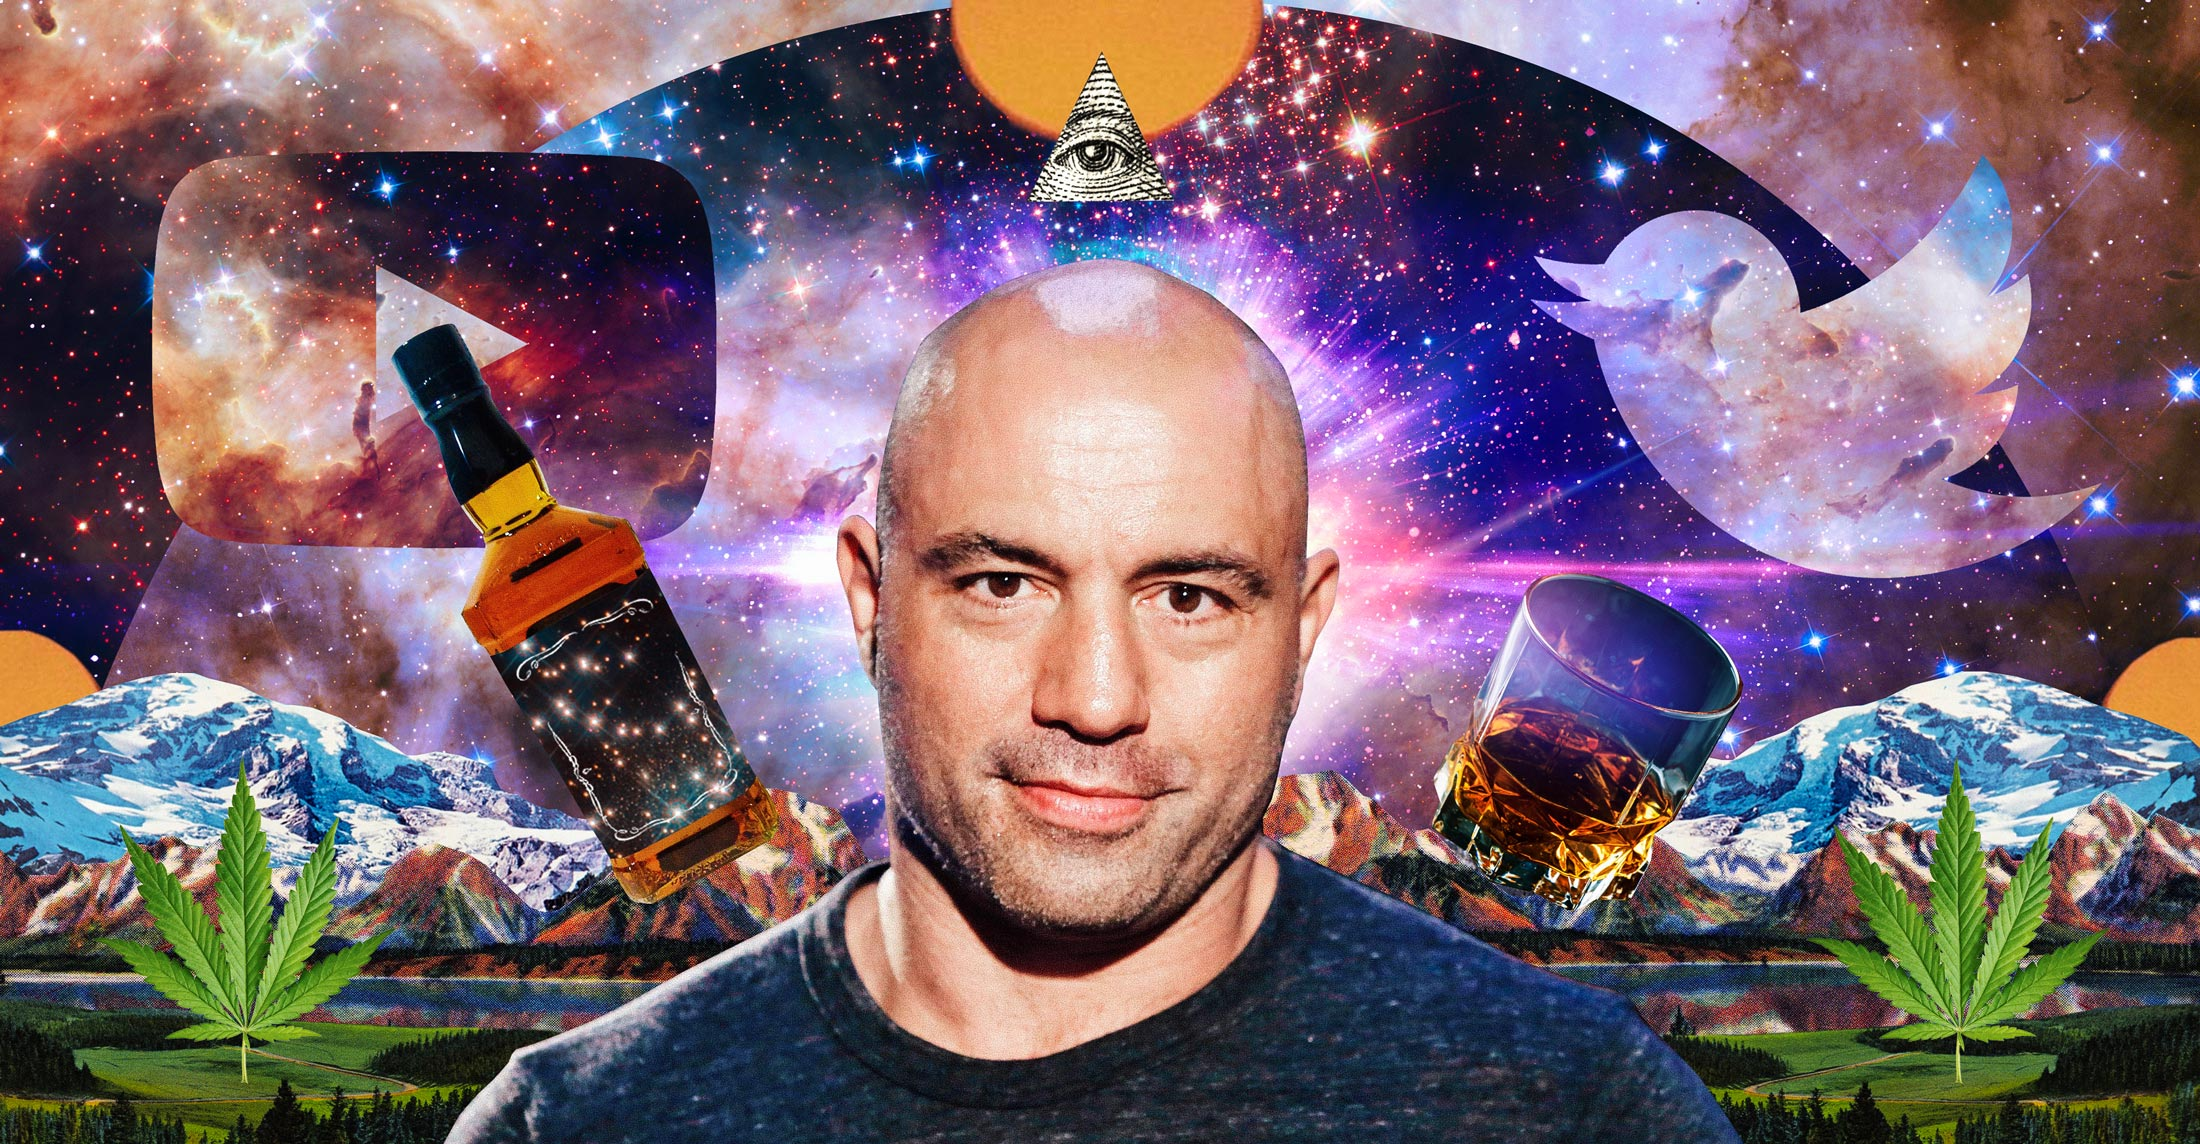 Joe Rogan's podcast is an essential platform for freethinkers who